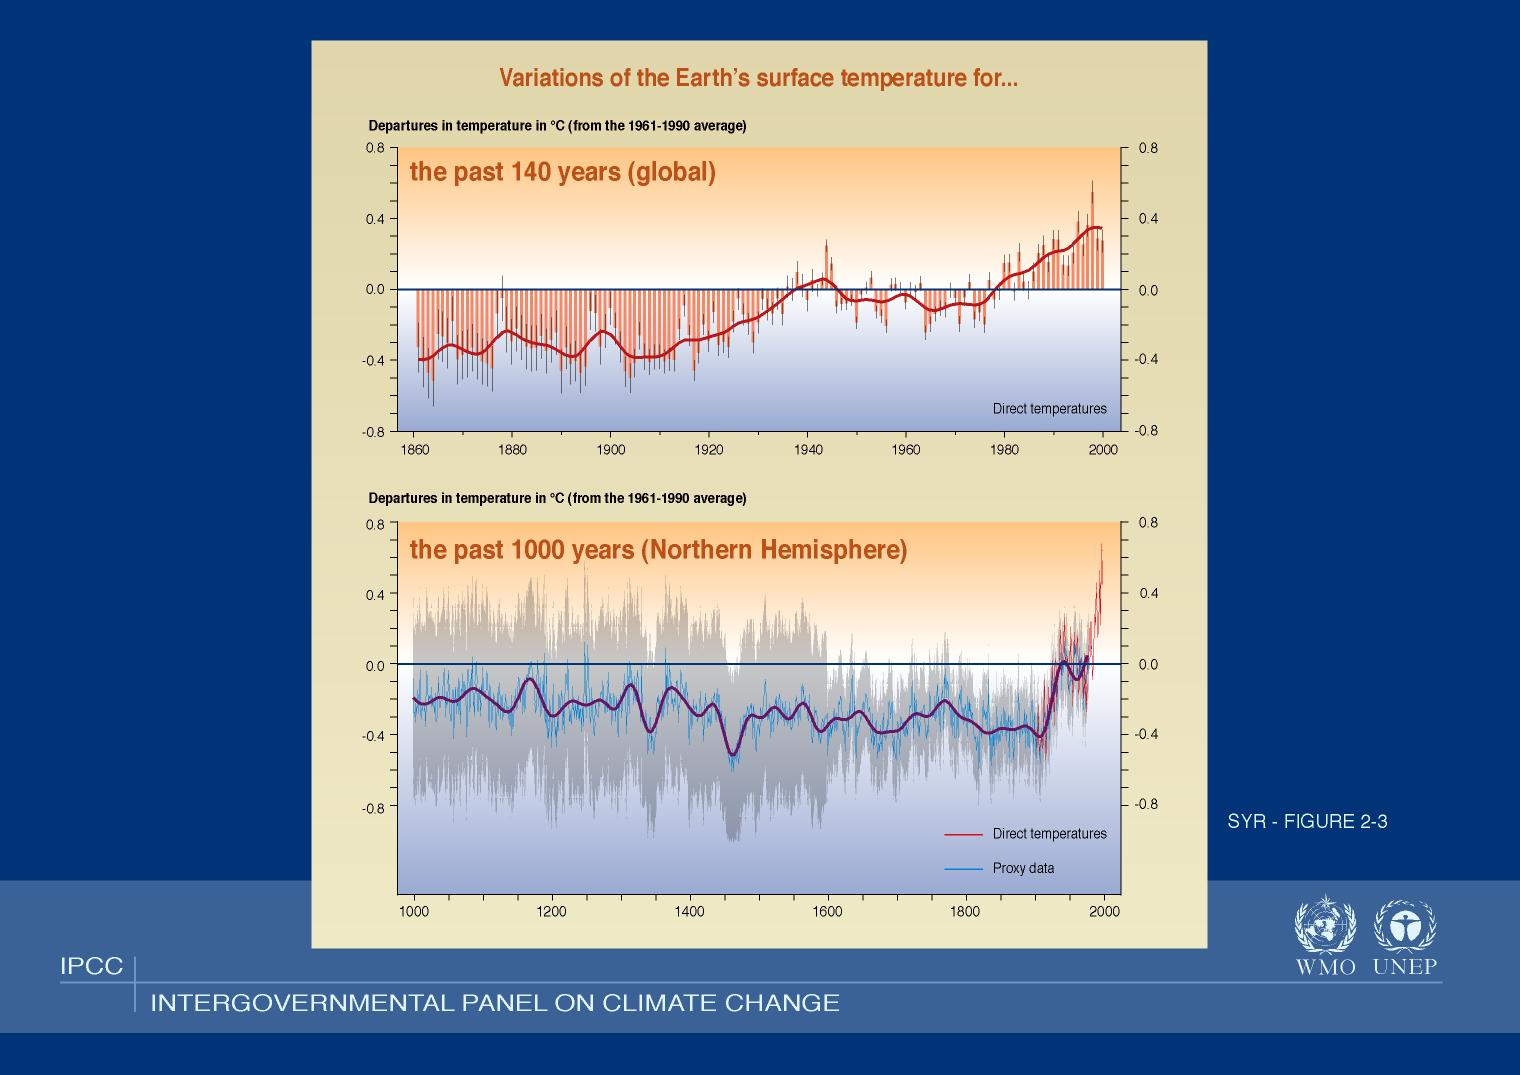 IPCC Global Temperature TAR